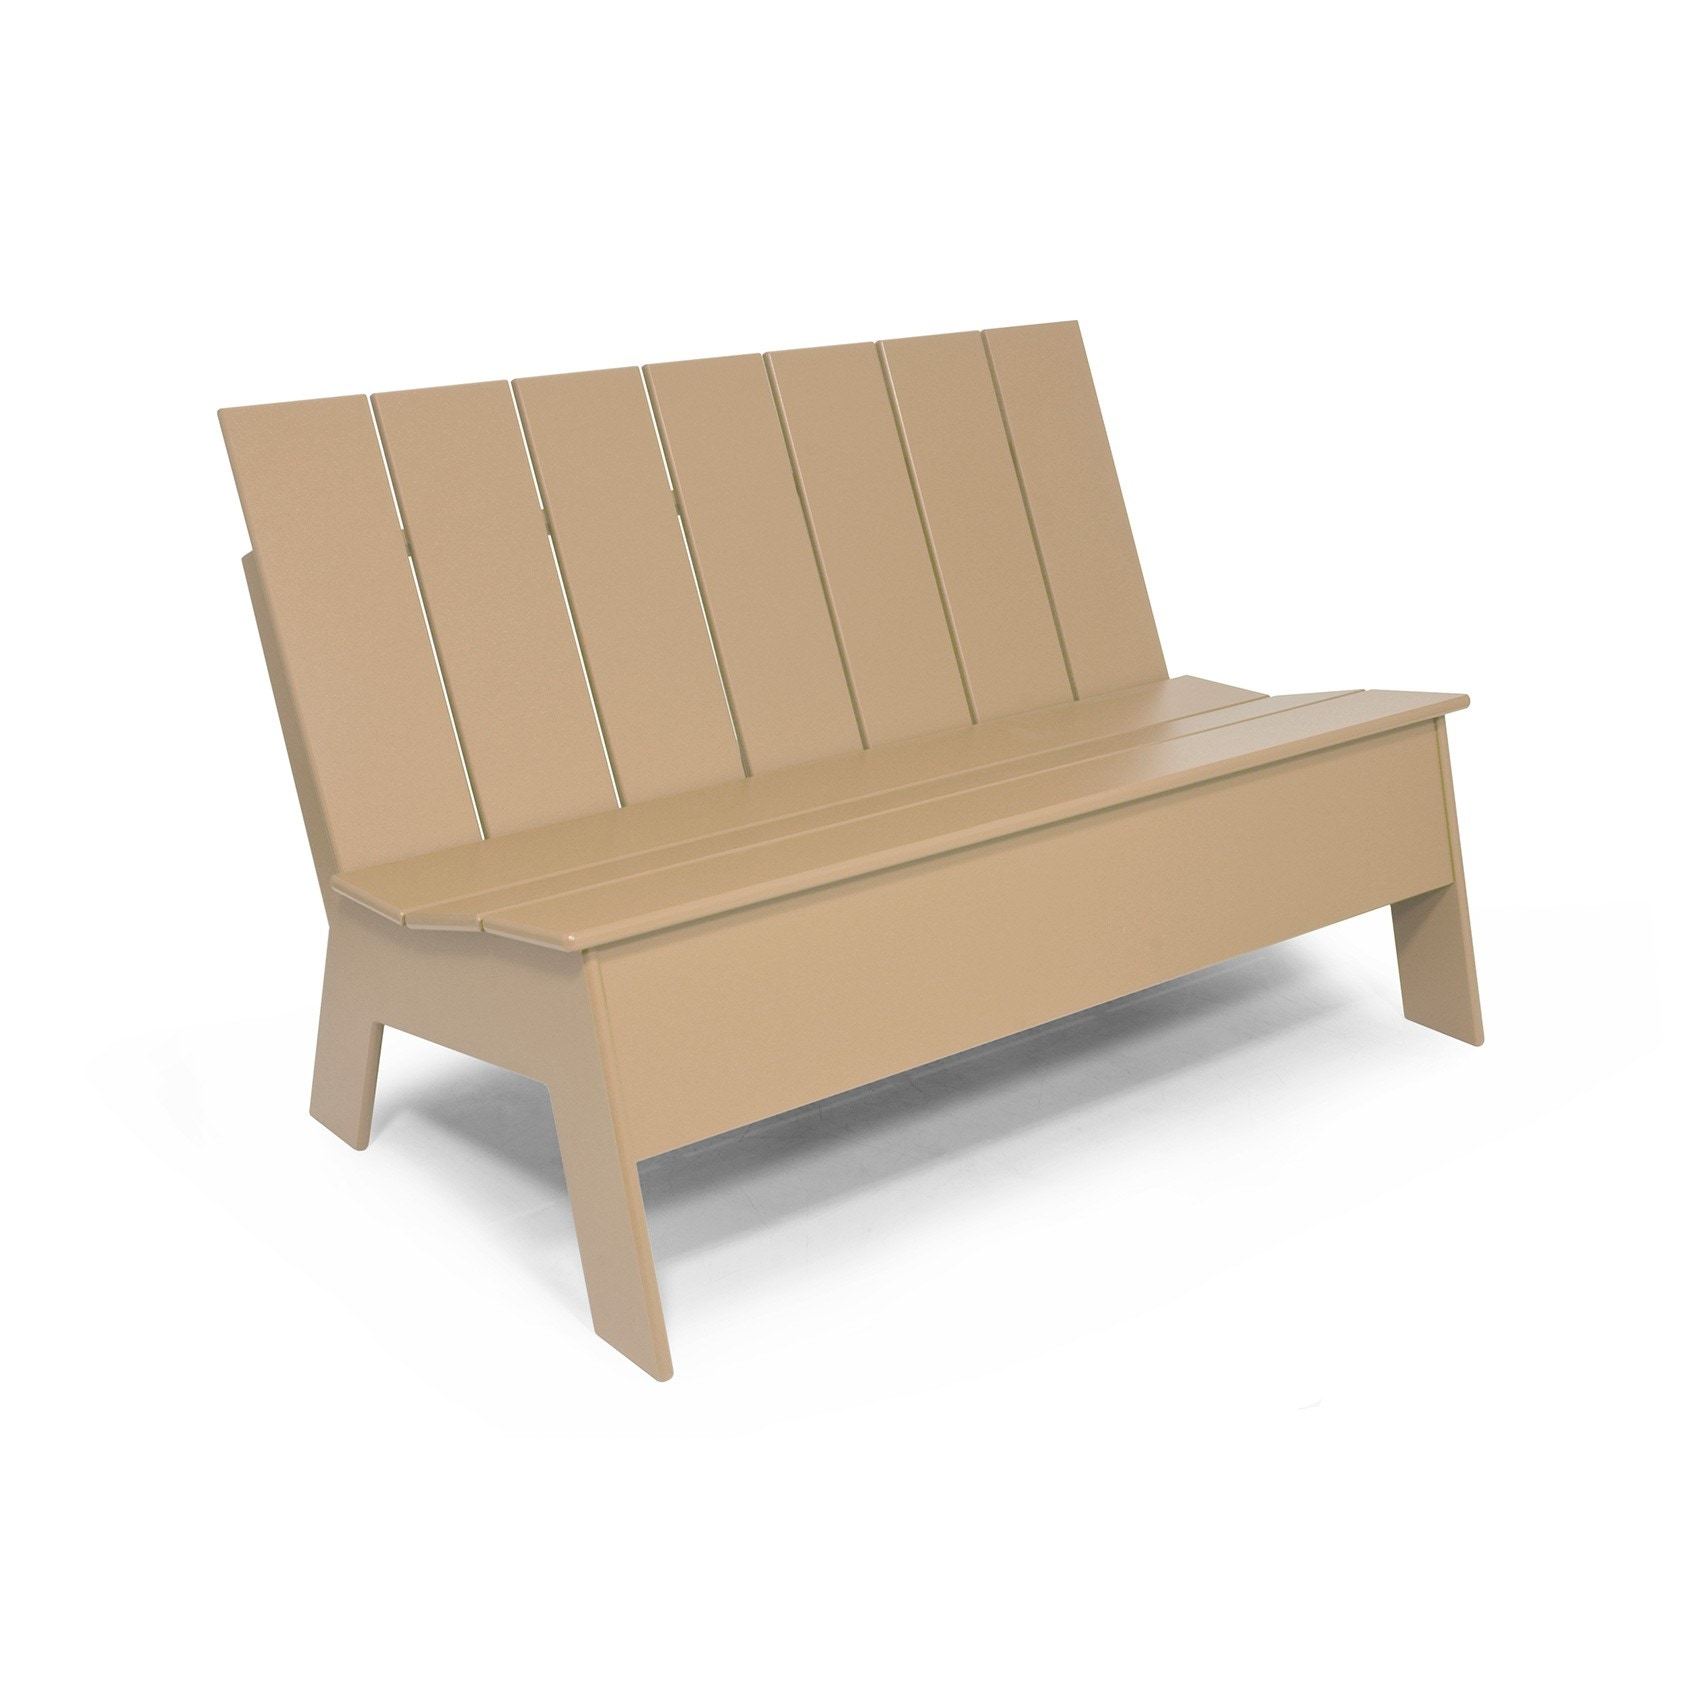 Loll Picket Low Back Double Outdoor Chair/Bench